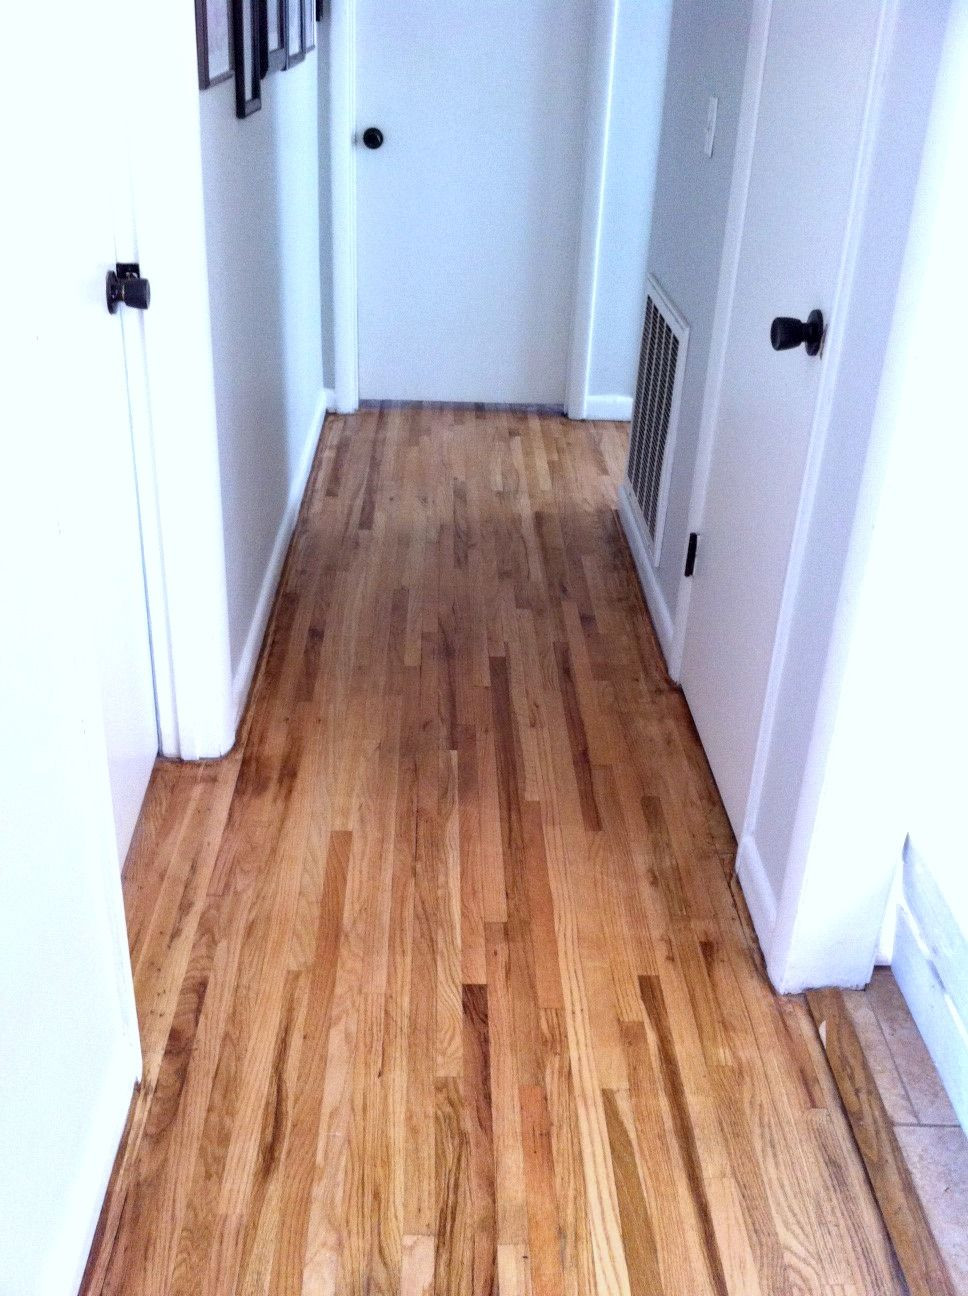 Cost to Refinish Hardwood Floors Of This is What Happens when You Dont Listen to the Folks at Lowes for Refinishing Hardwood Floors Includes Price Breakdown Mom In Music City I Didnt Stain My Floors I Think the Natural Wood Goes Well with Our House